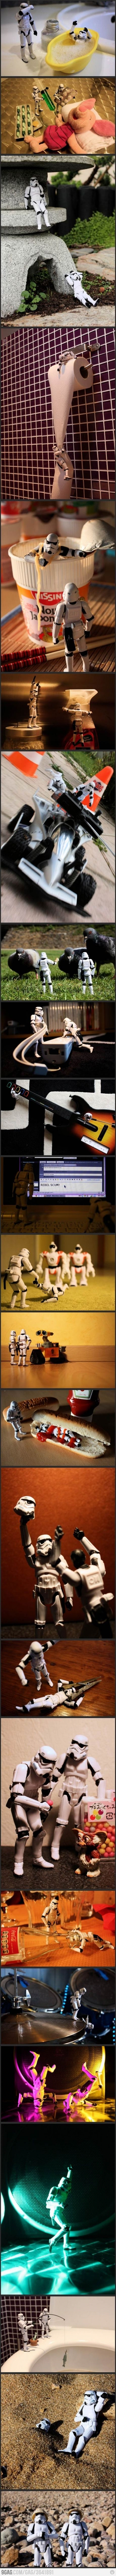 Stormtrooper - Moments of life. Very creative and funny!! :D